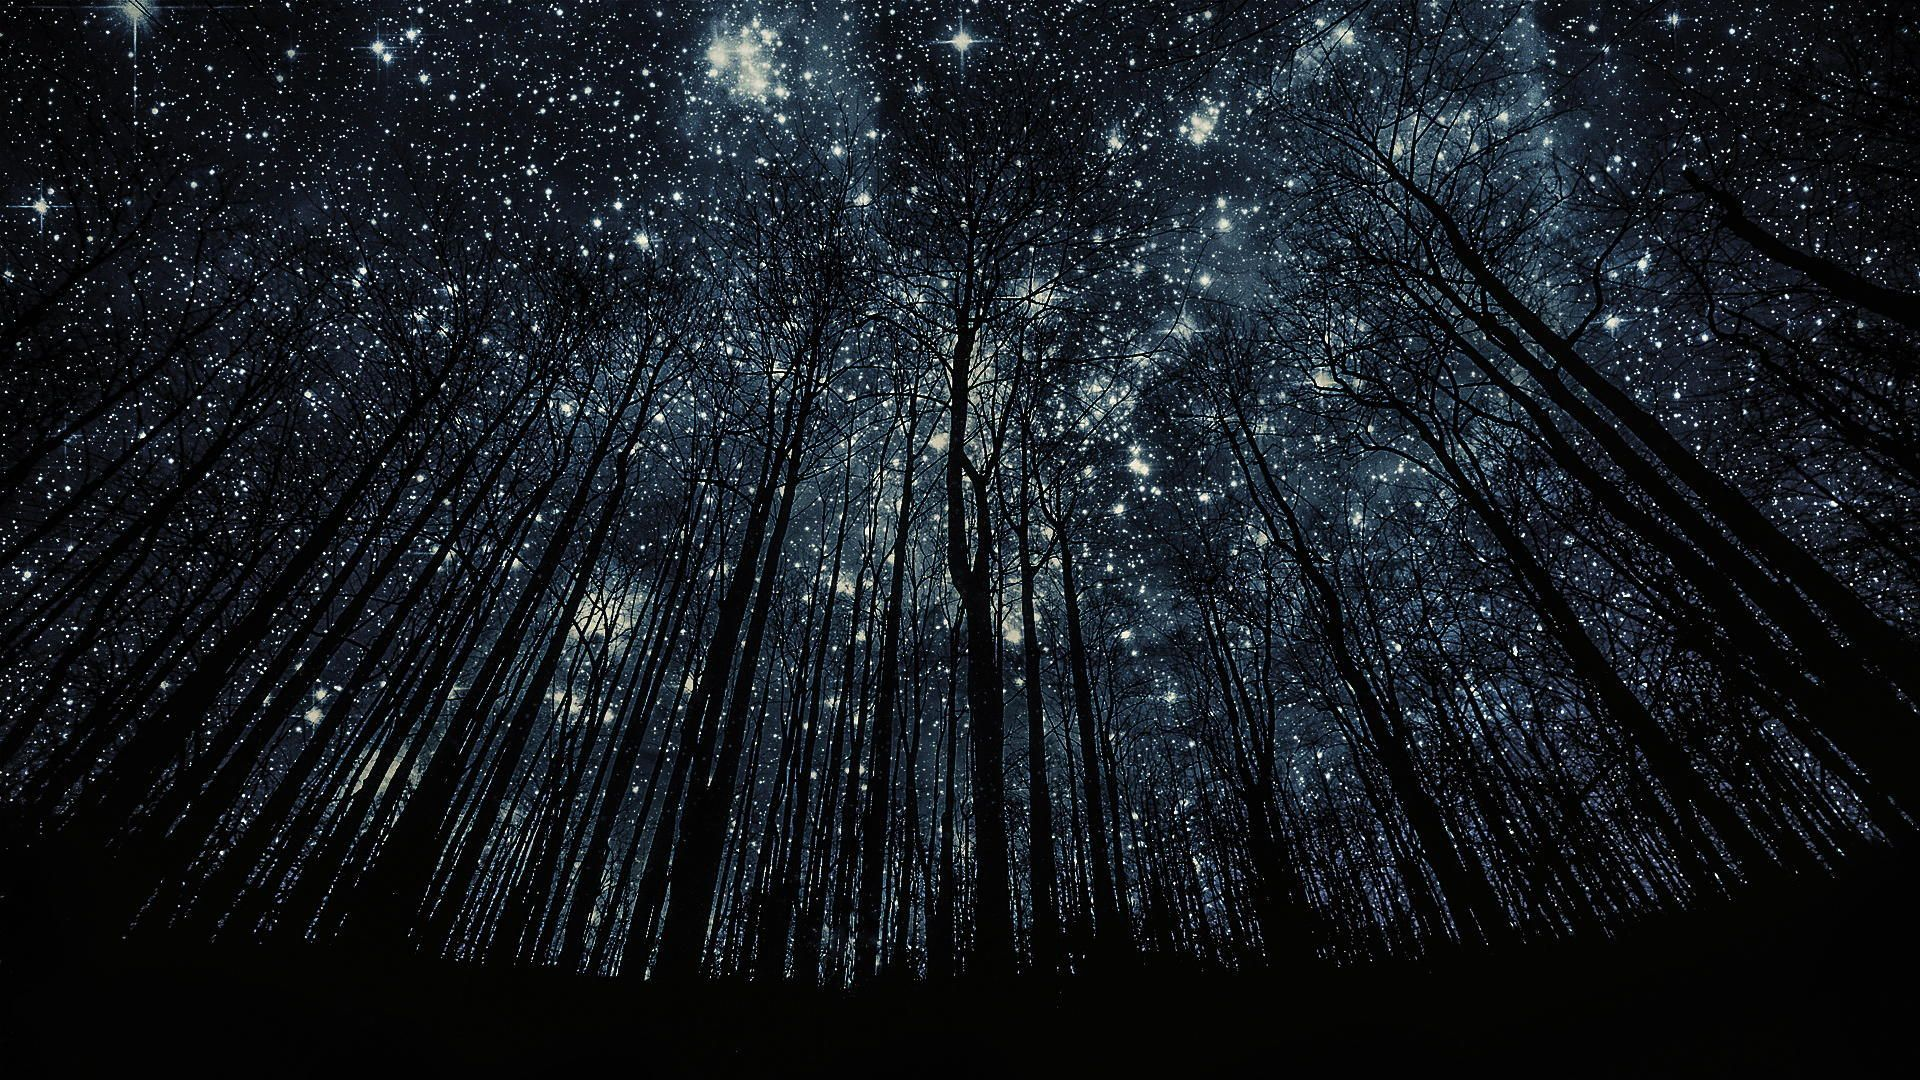 Silhouettes By Harry Finder Imgur Night Sky Photos Night Sky Wallpaper Starry Night Wallpaper Wallpaper starry sky stars forest night